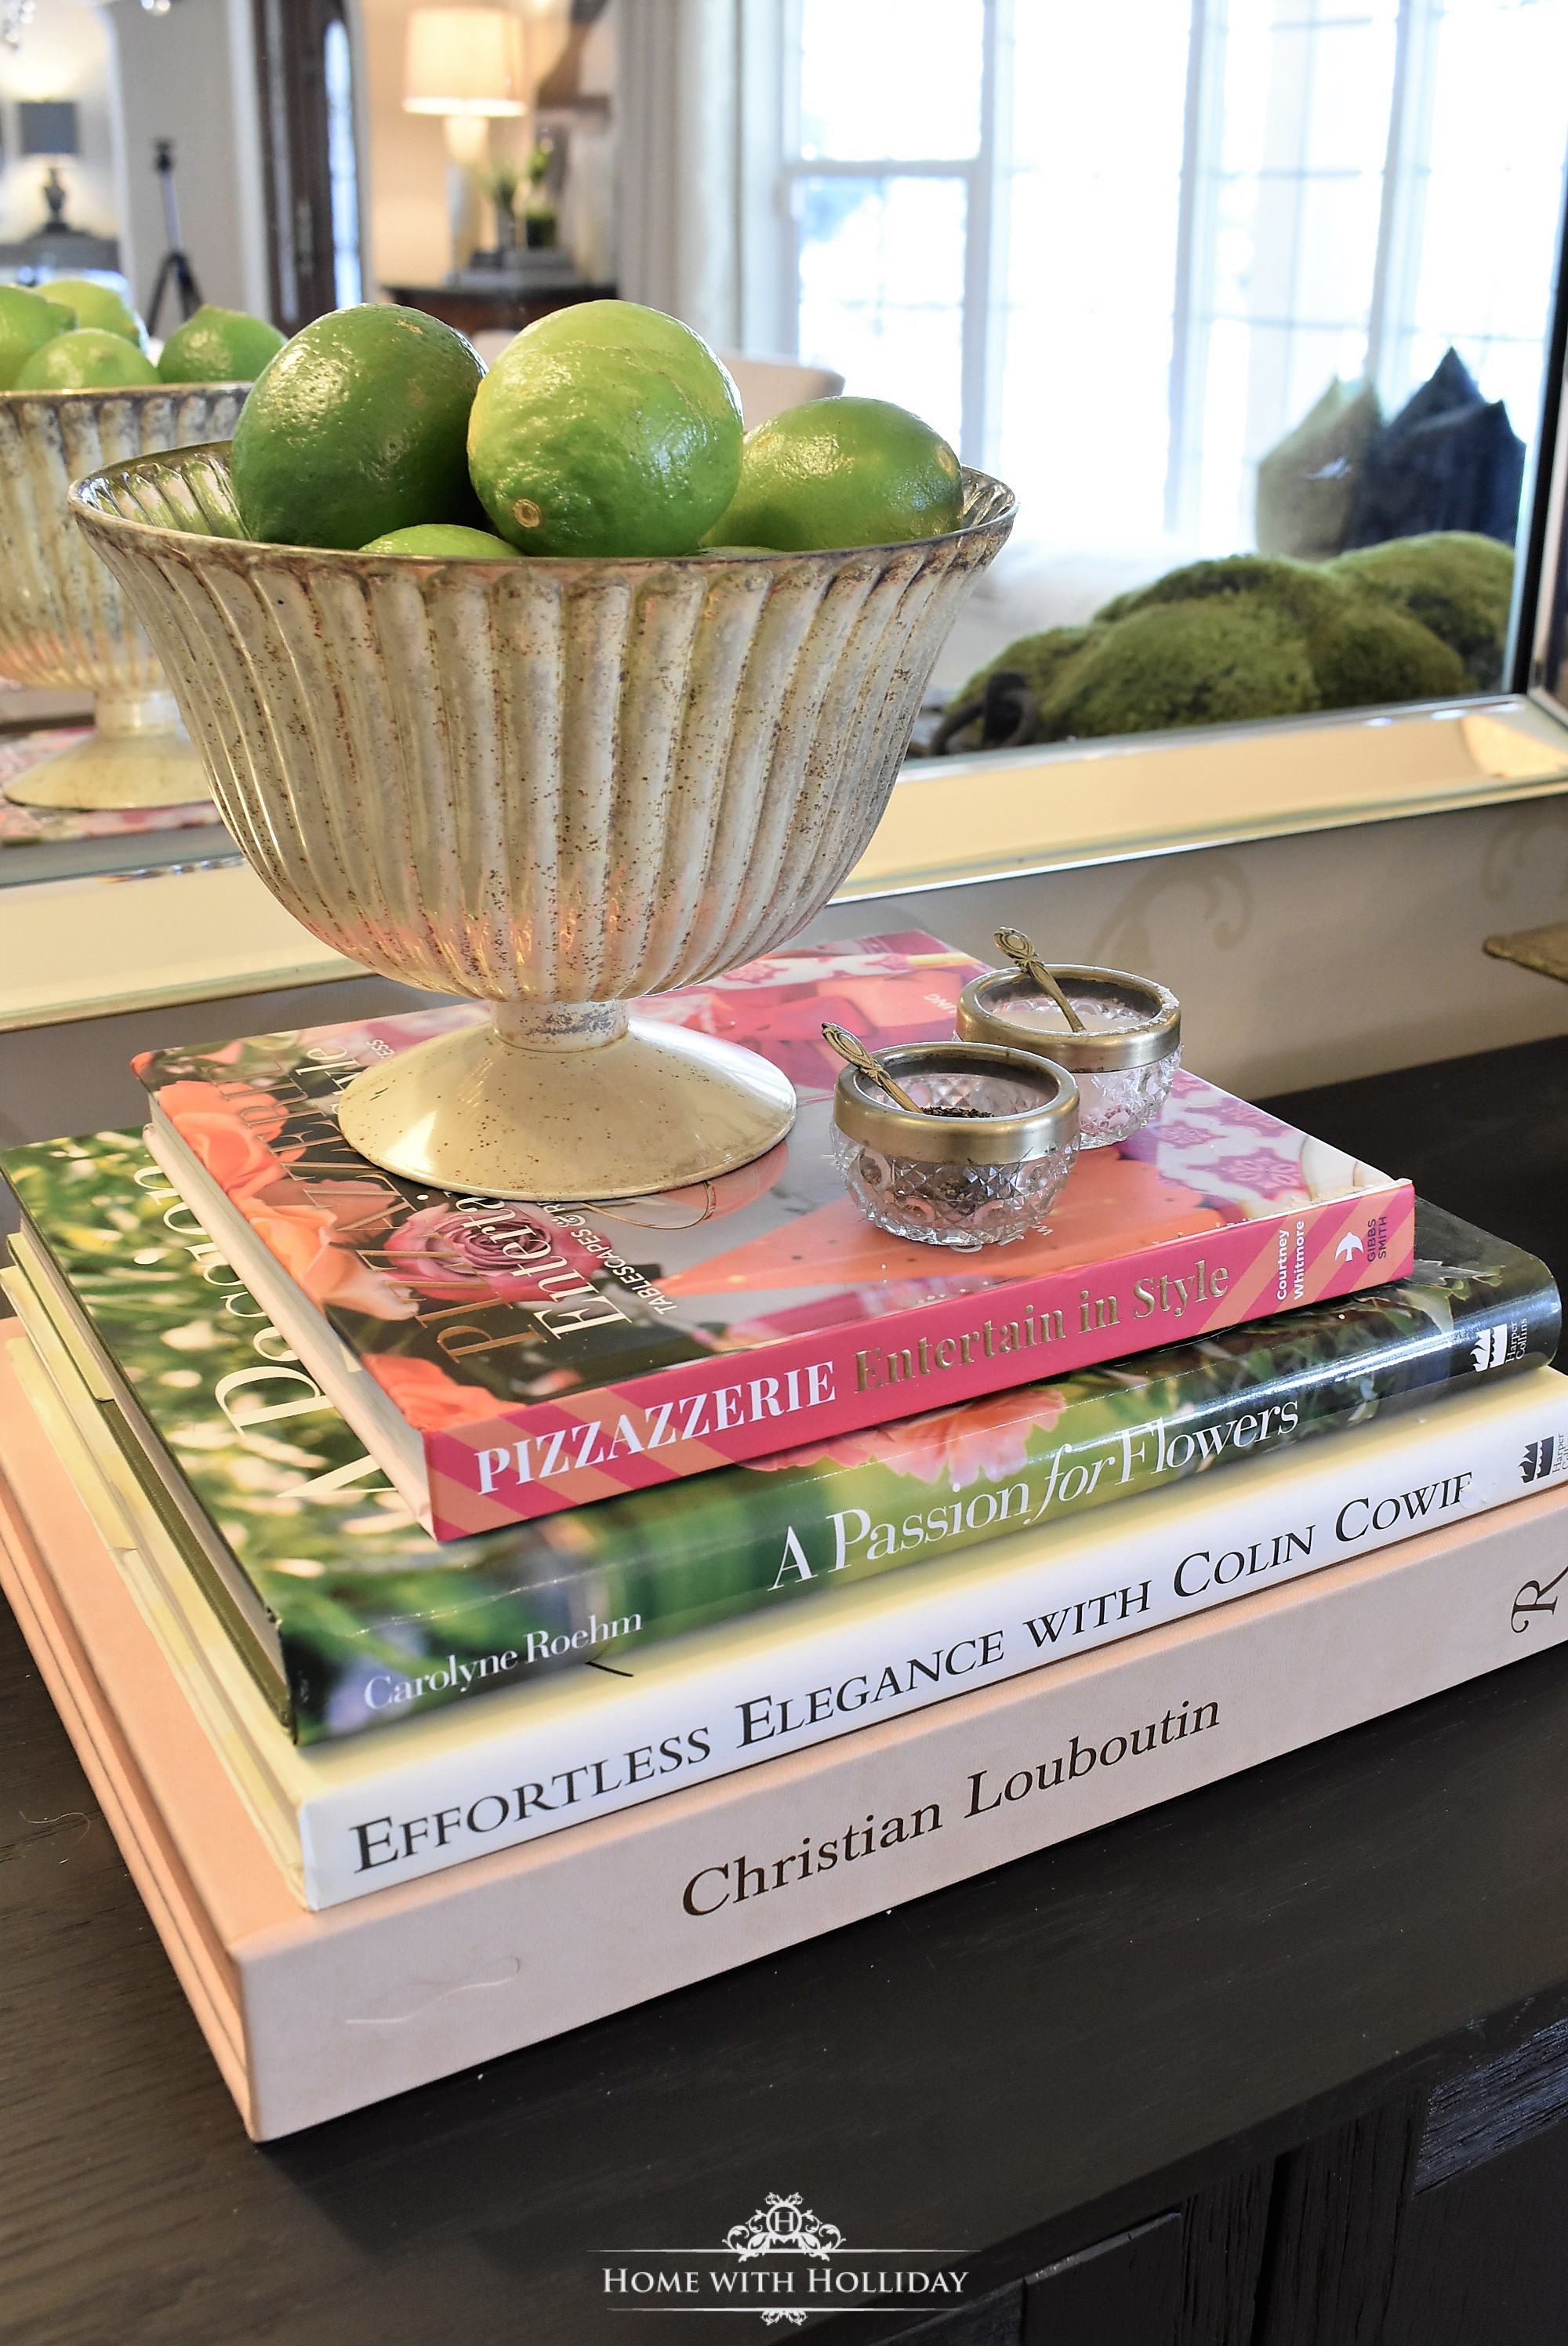 Friday Favorites Coffee Table Books On Entertaining And Cooking - Coffee table that looks like books